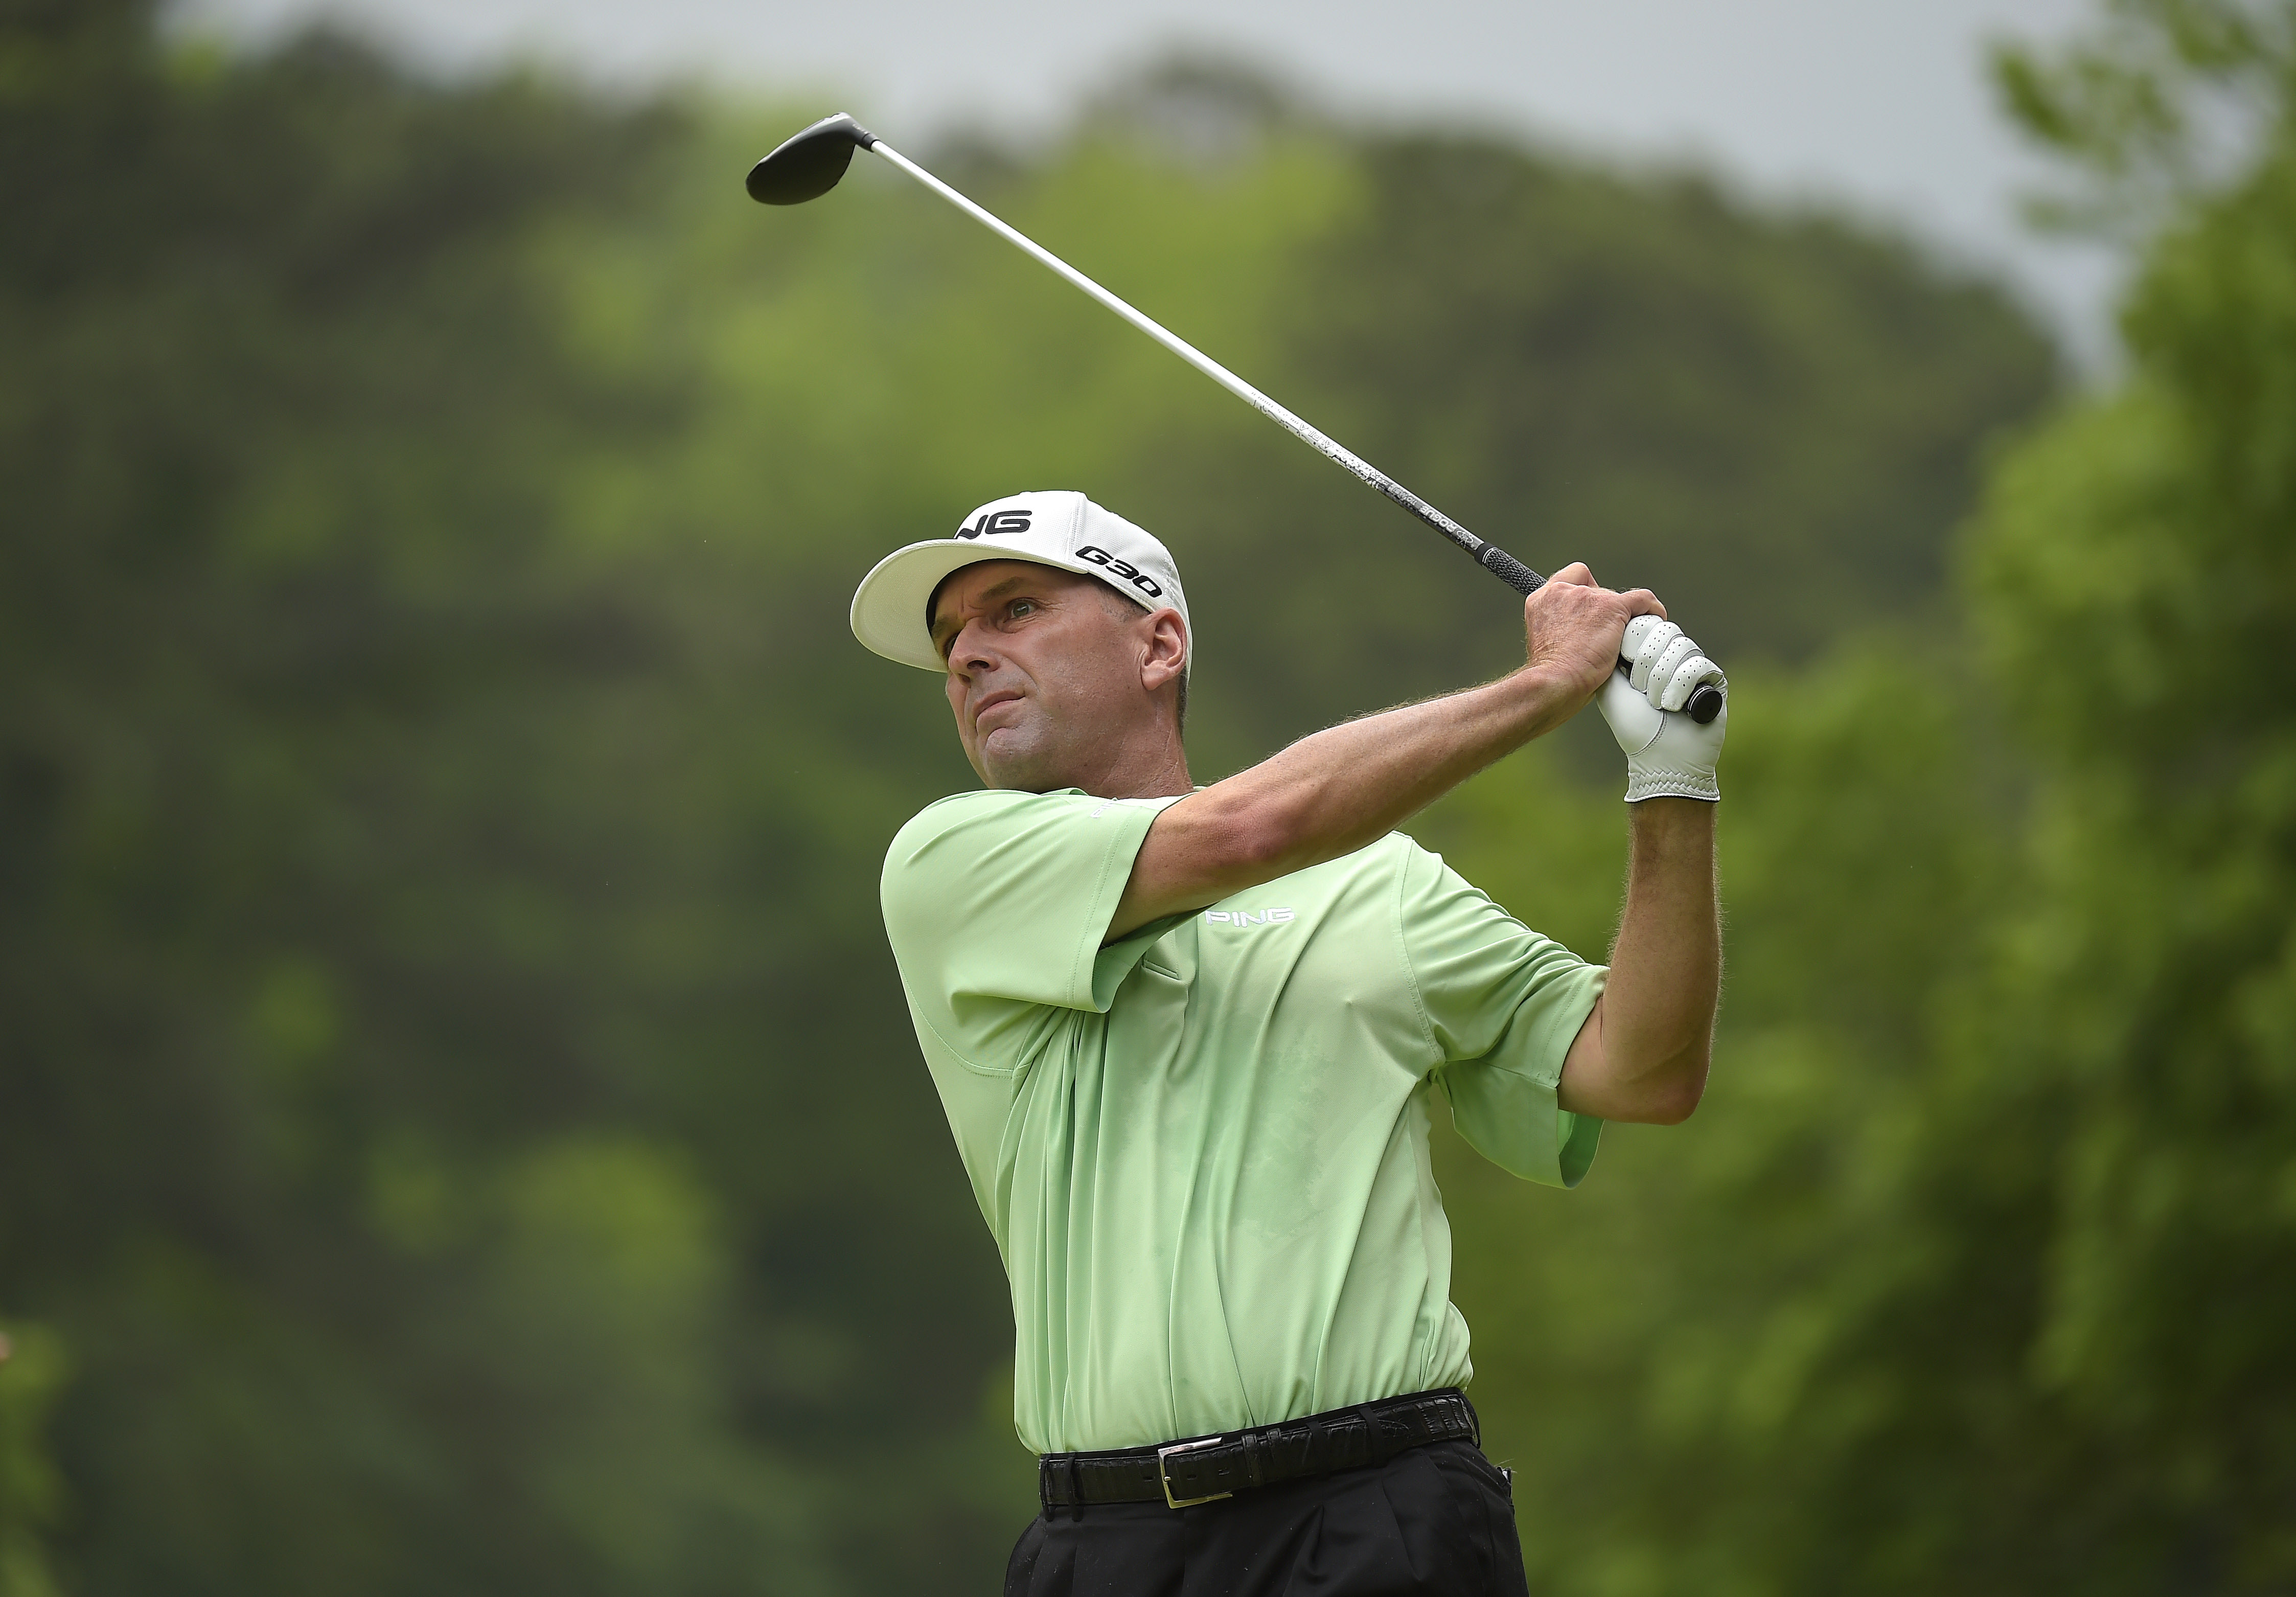 Kevin Sutherland tees off on the 10th hole during the second round of the Champions Tour Regions Tradition.